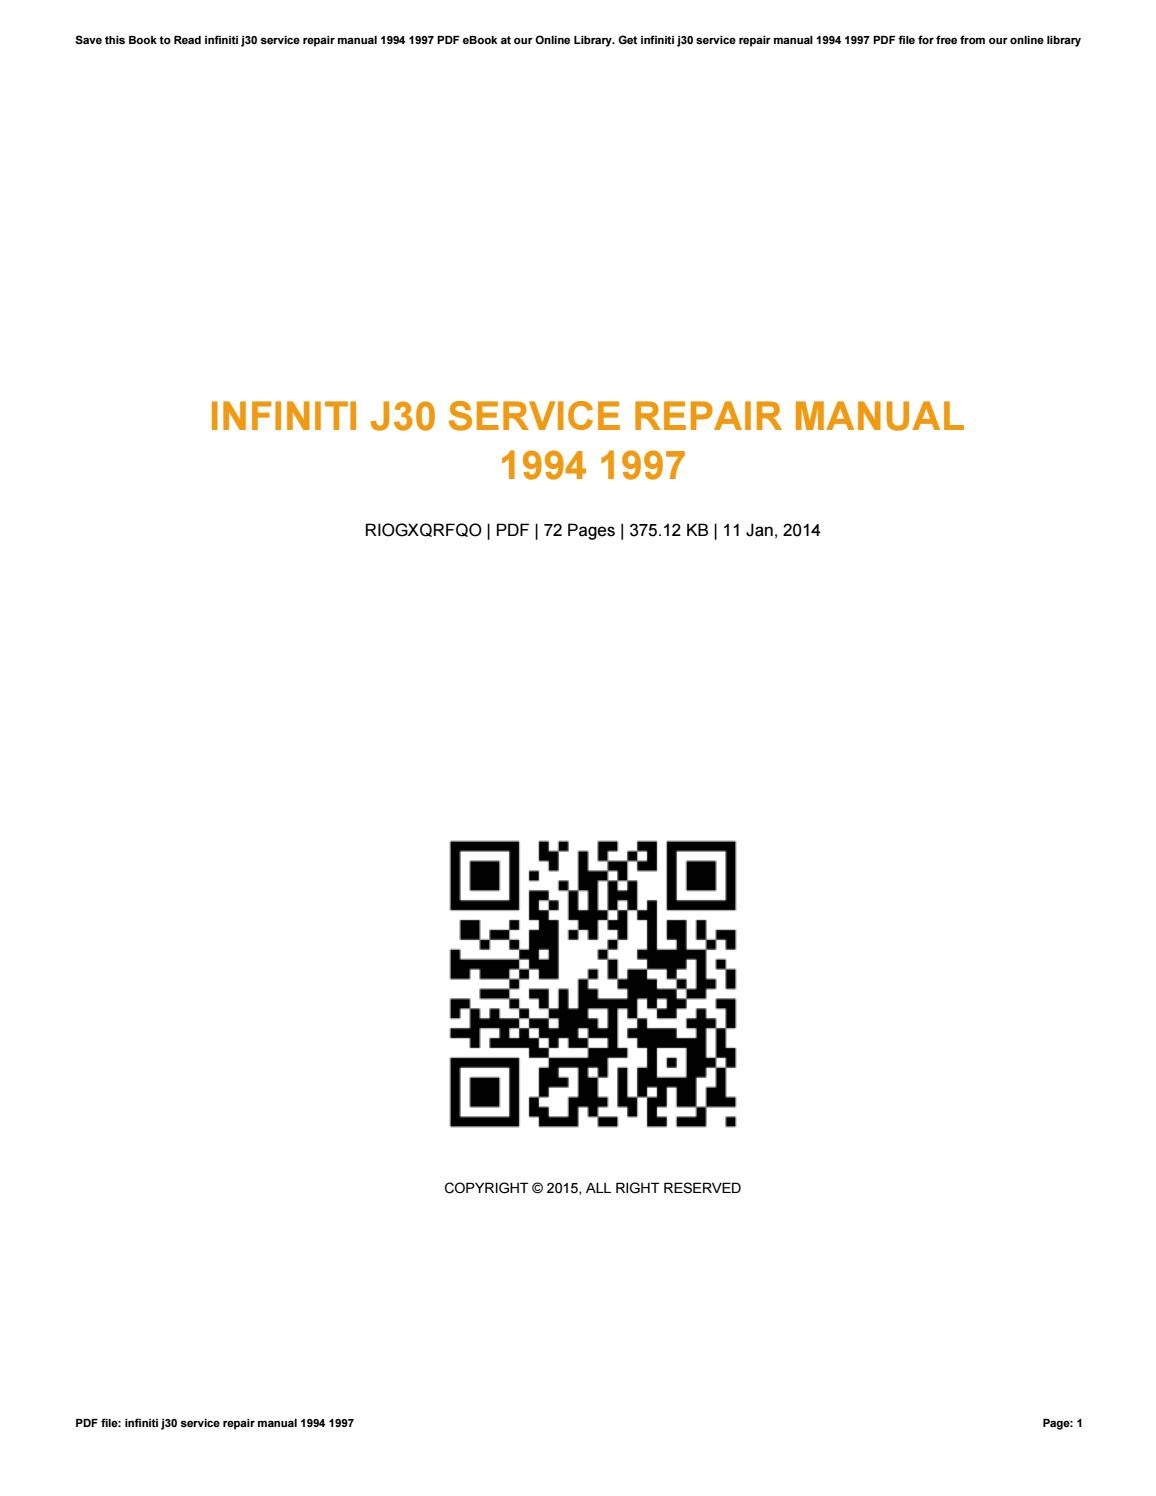 Infiniti j30 service repair manual 1994 1997 by DianaMitchell1945 - issuu